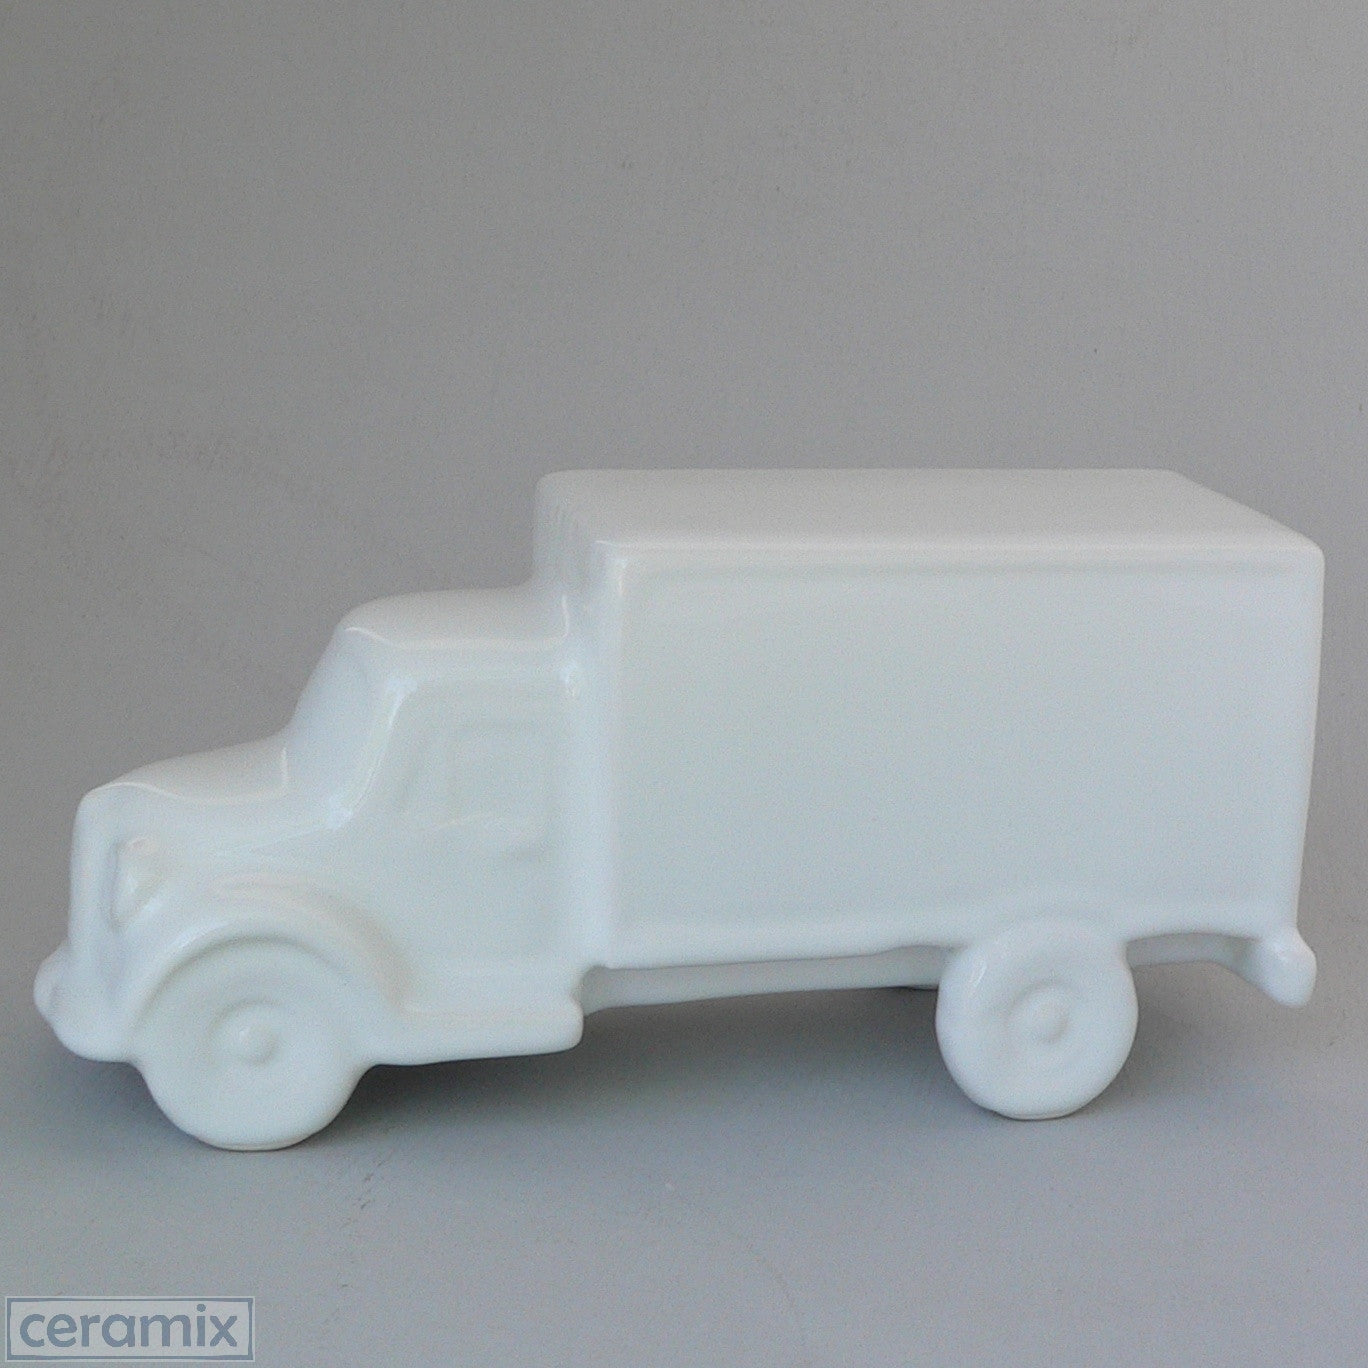 White Ceramic Truck Ornament in White Clay by Ceramix